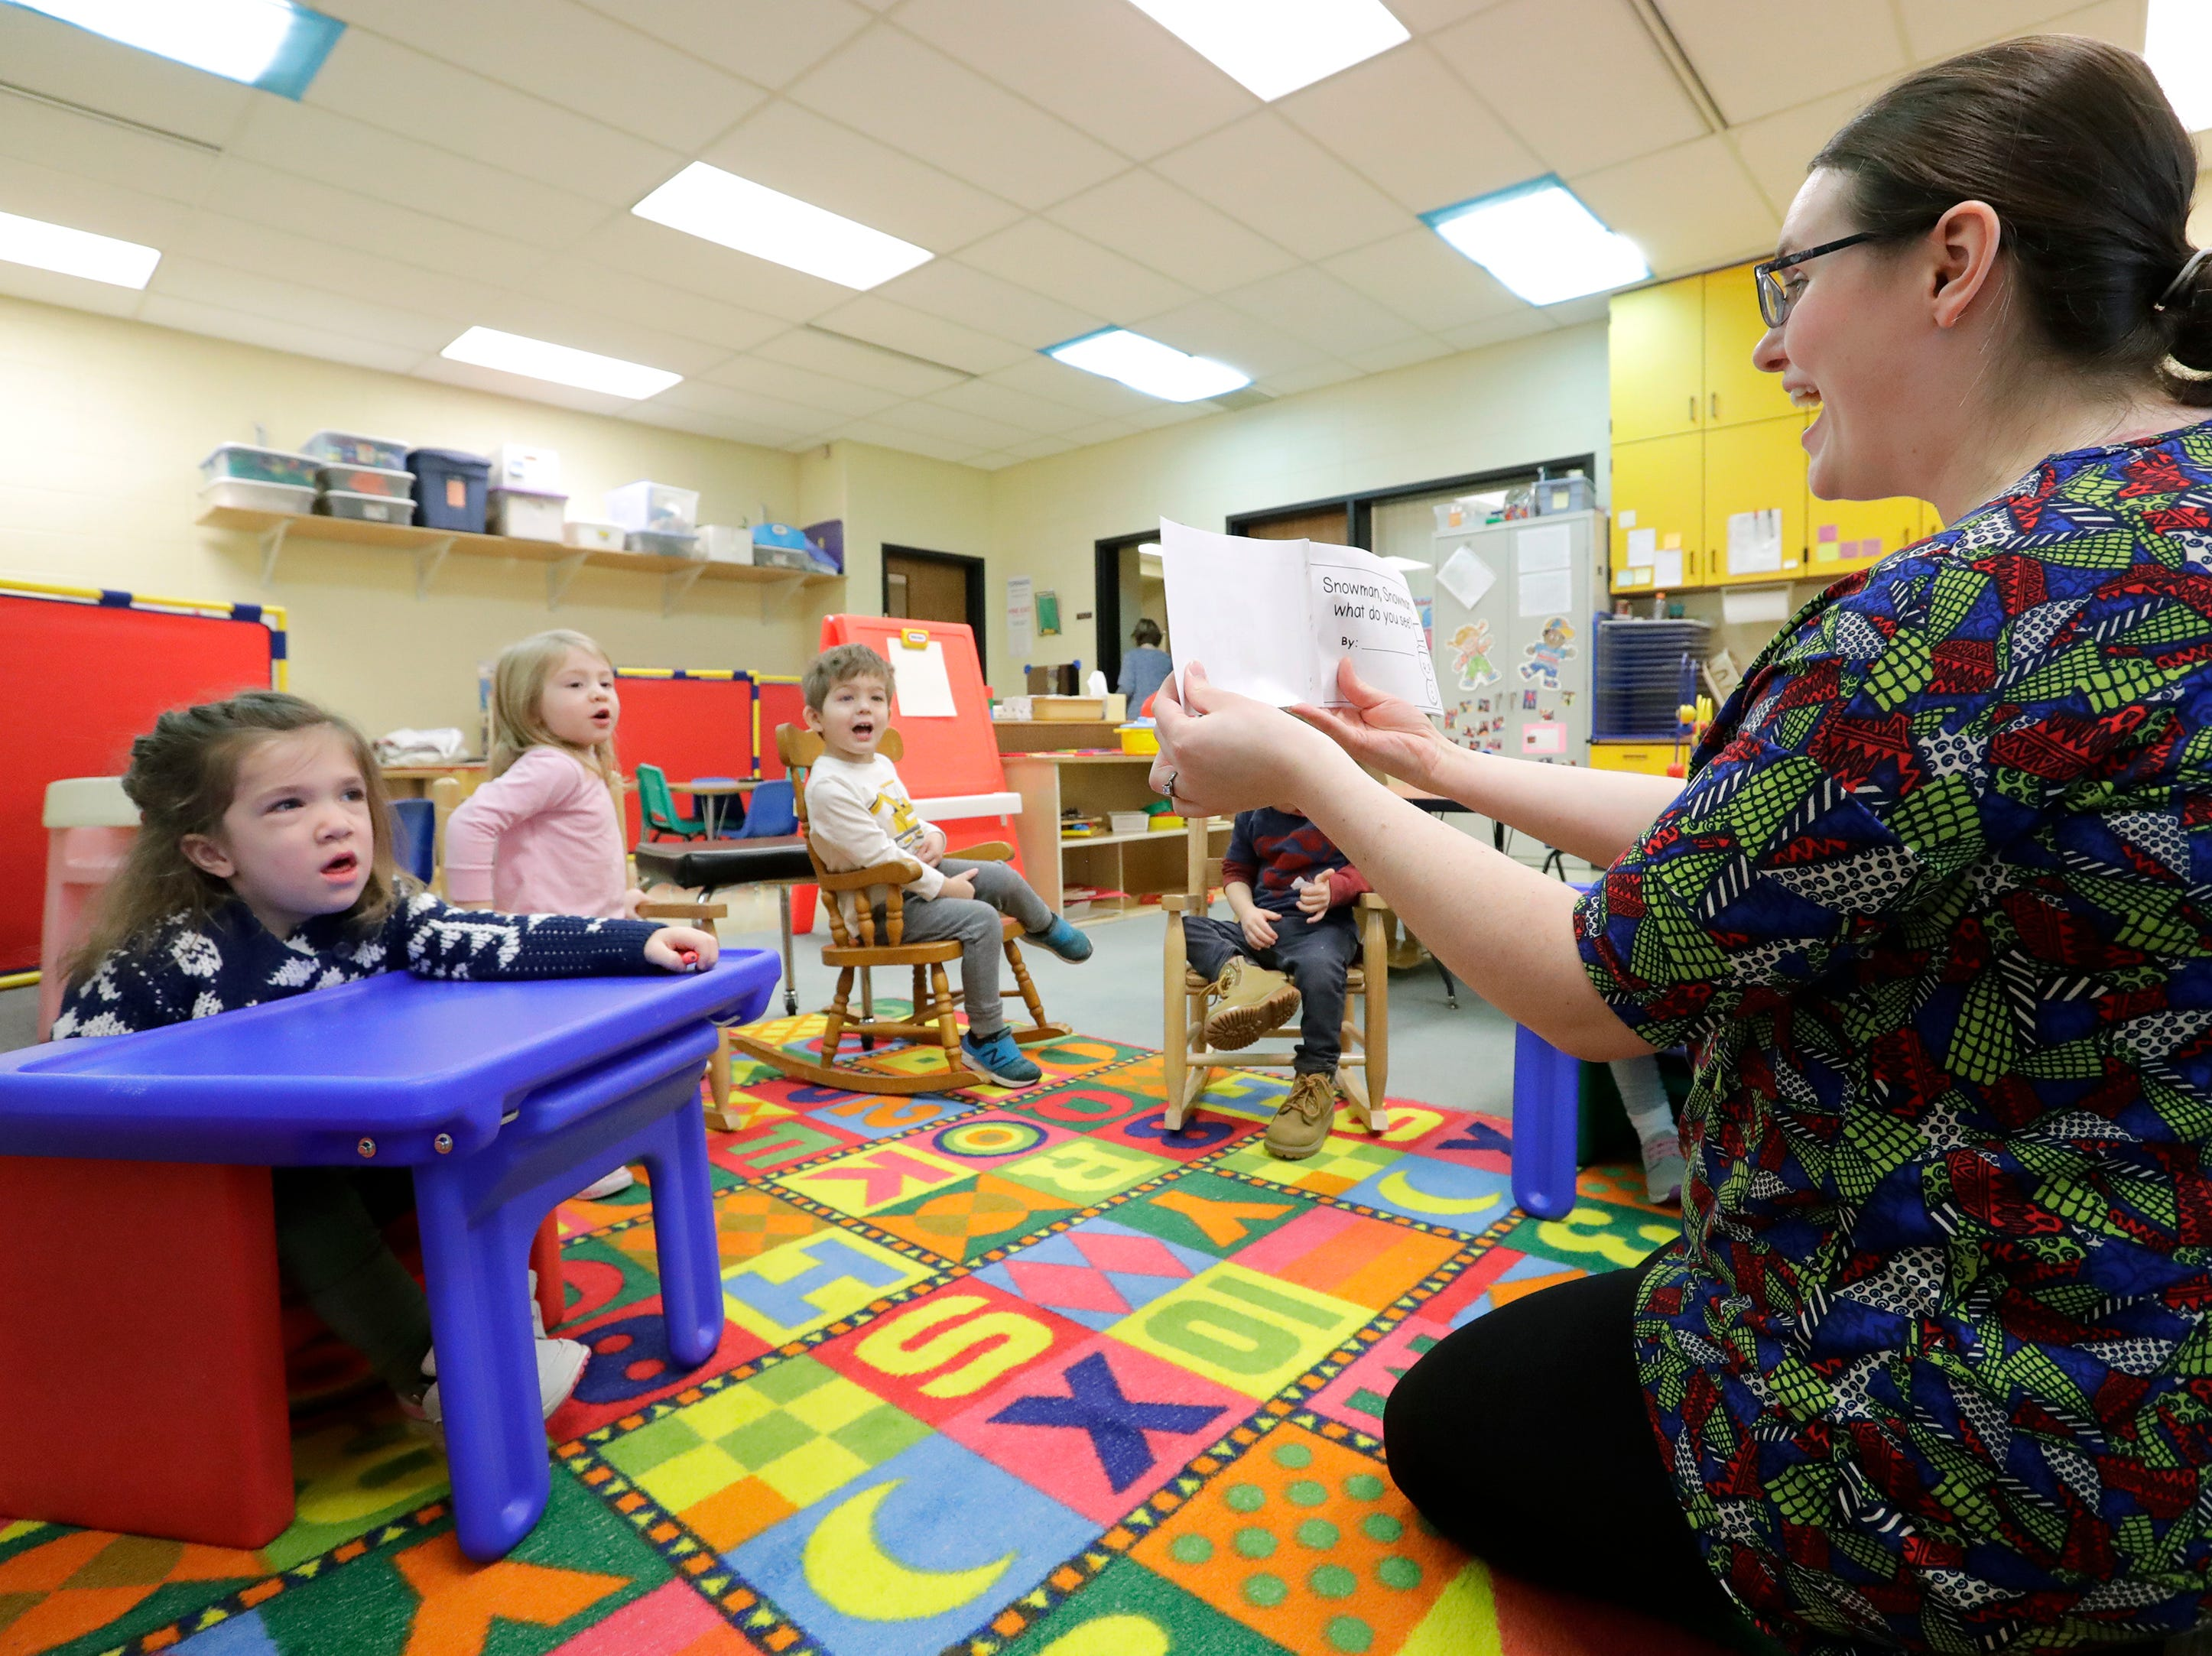 Avi Brennan, left, answers a question by speech-language pathologist Deirdre Floros during a class speech therepy session Monday, Jan. 7, 2019, at the Washington School of Early Learning in Neenah, Wis.